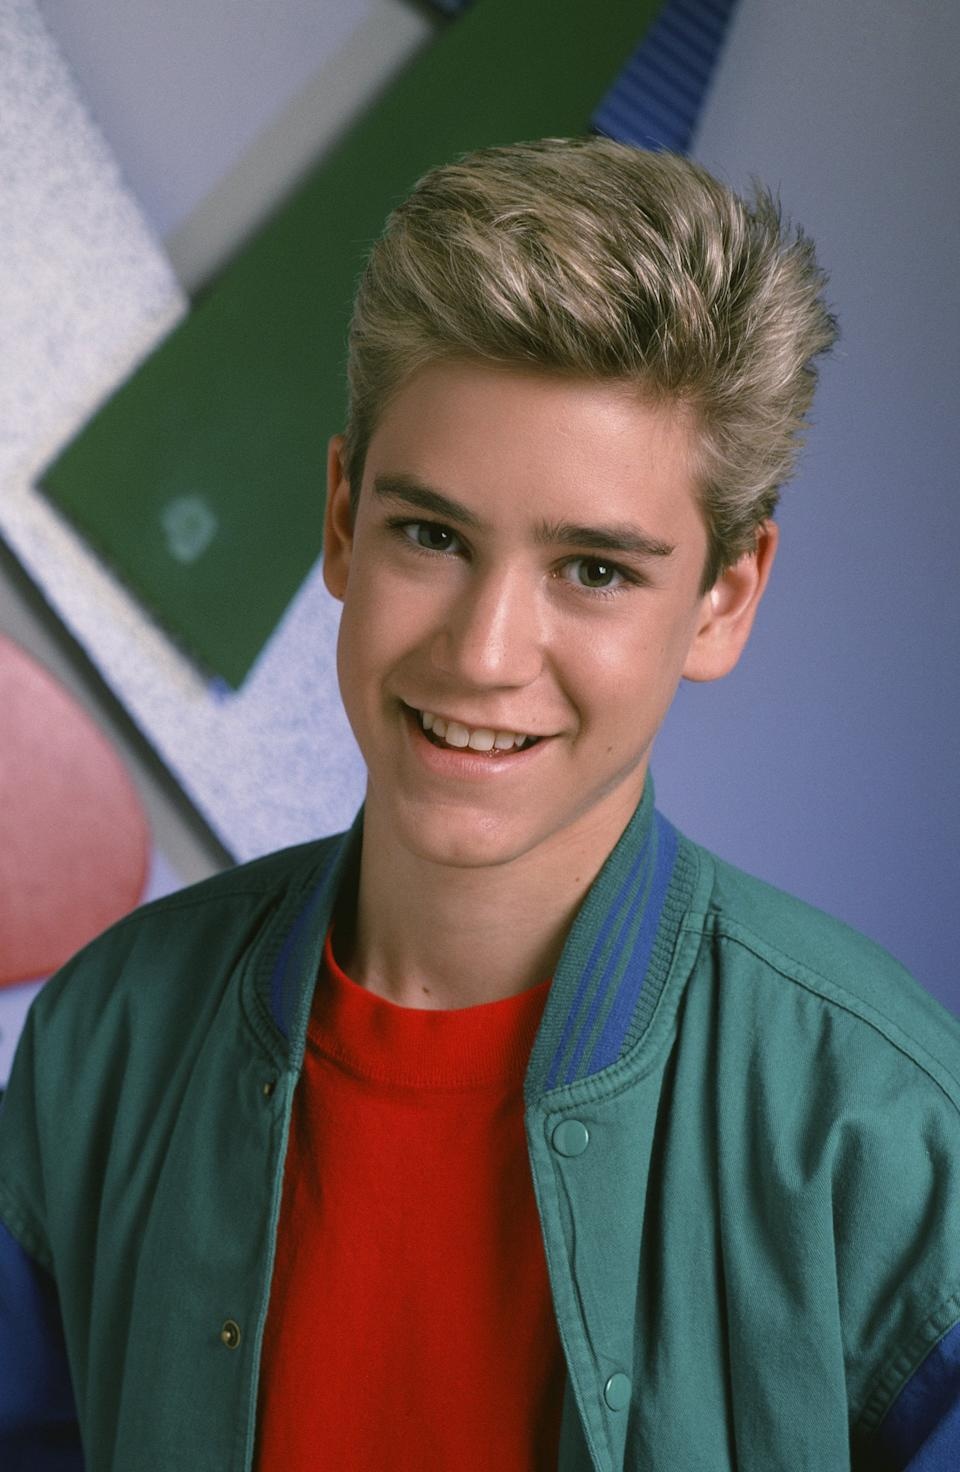 A teenage Gosselaar starred as Zack Morris in the original Saved by the Bell as well as Good Morning, Miss Bliss. (Photo: Alice S. Hall/NBCU Photo Bank